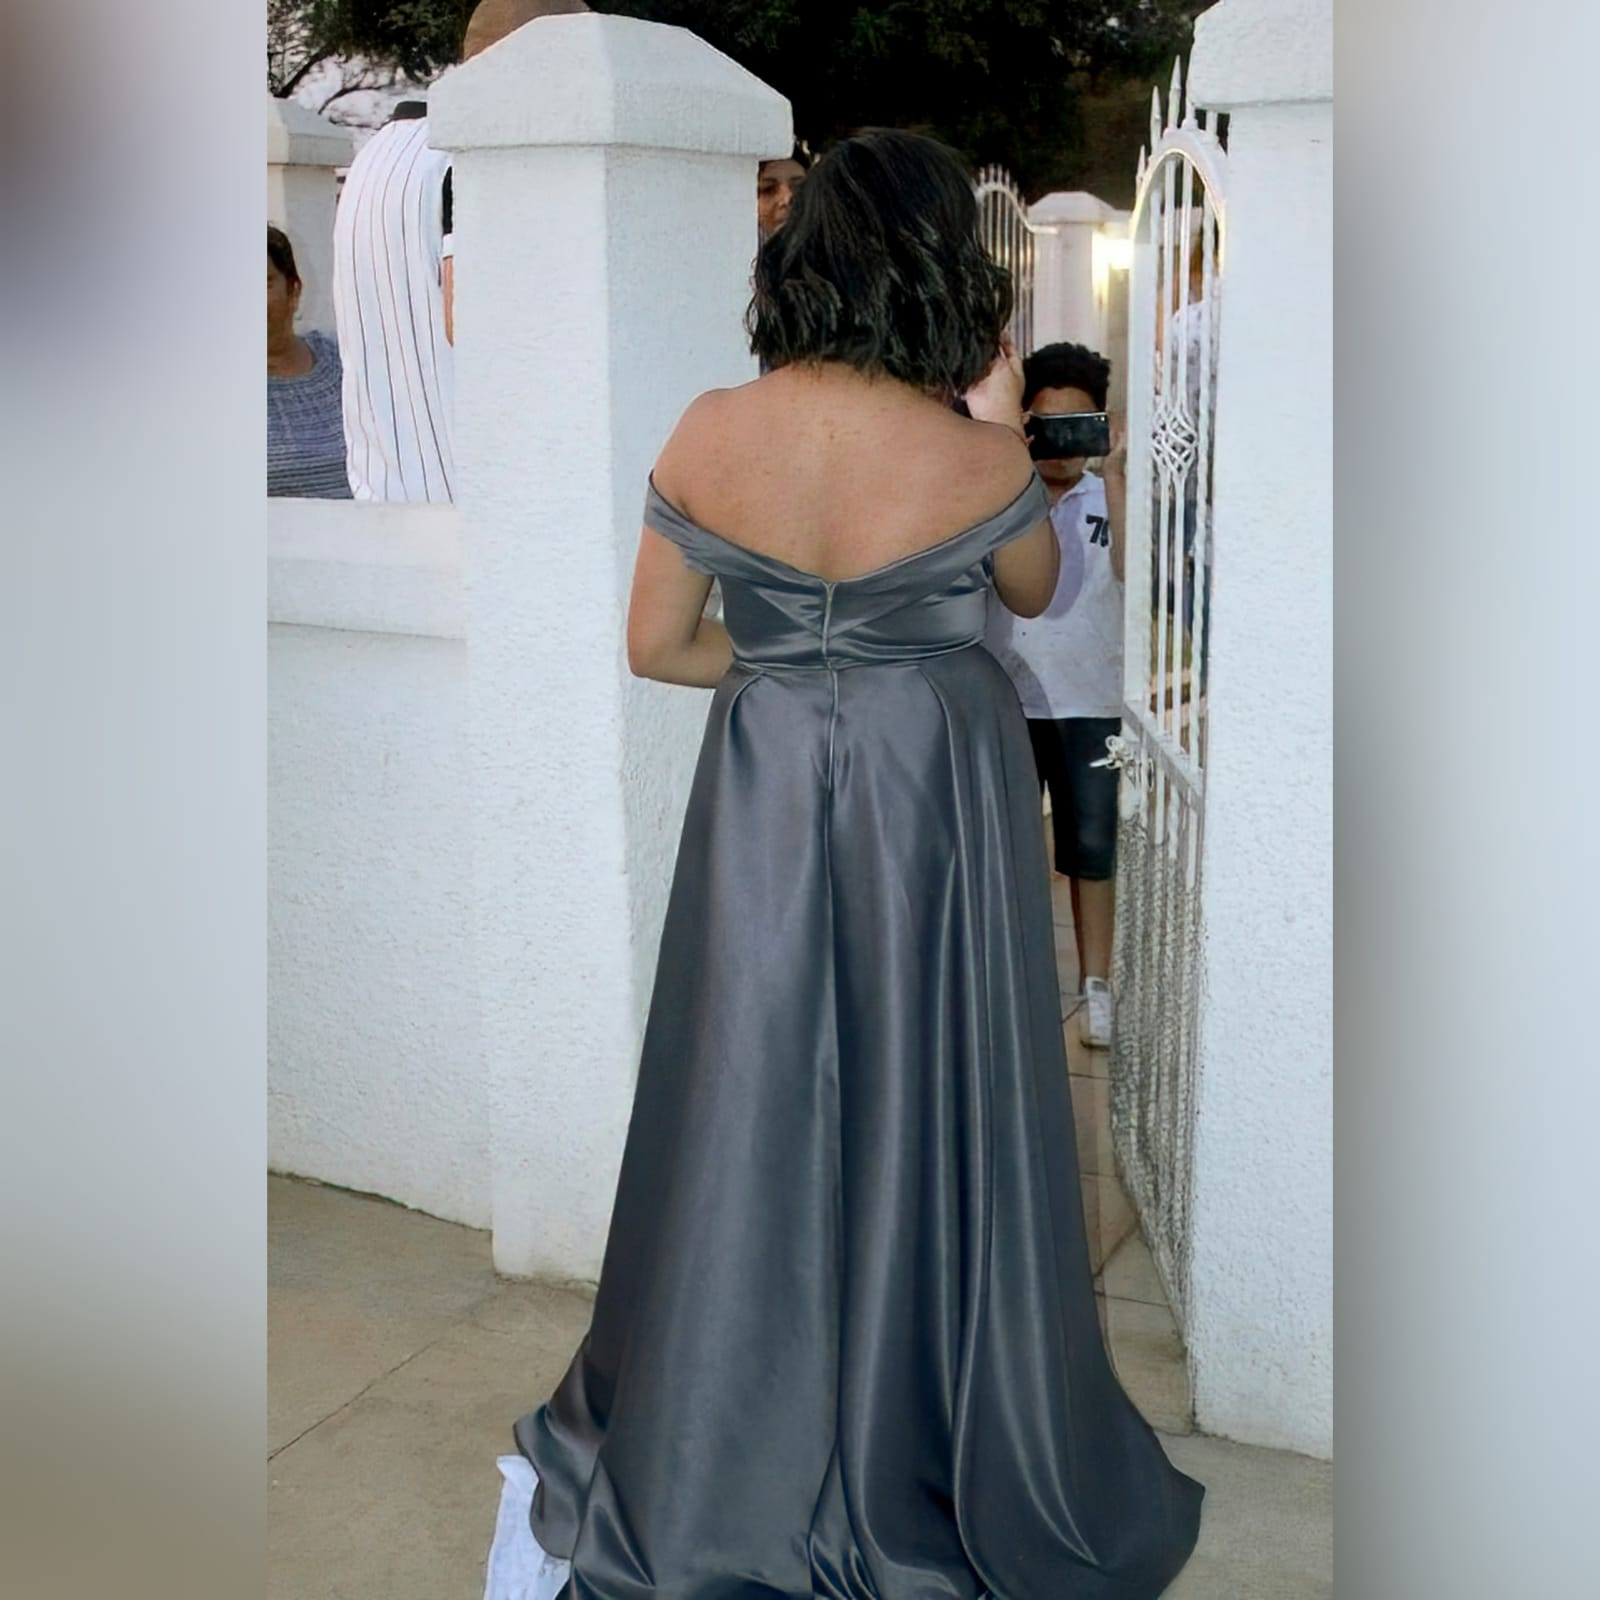 Elegant classic plus size prom dress in grey 4 an elegant classic plus size prom dress design, custom made for khiara. Off-shoulder gorgeous v neckline, fitted till the waist, with a full rich long bottom with a high slit. A removable belt with a touch of silver adding a finish to this stunning look.